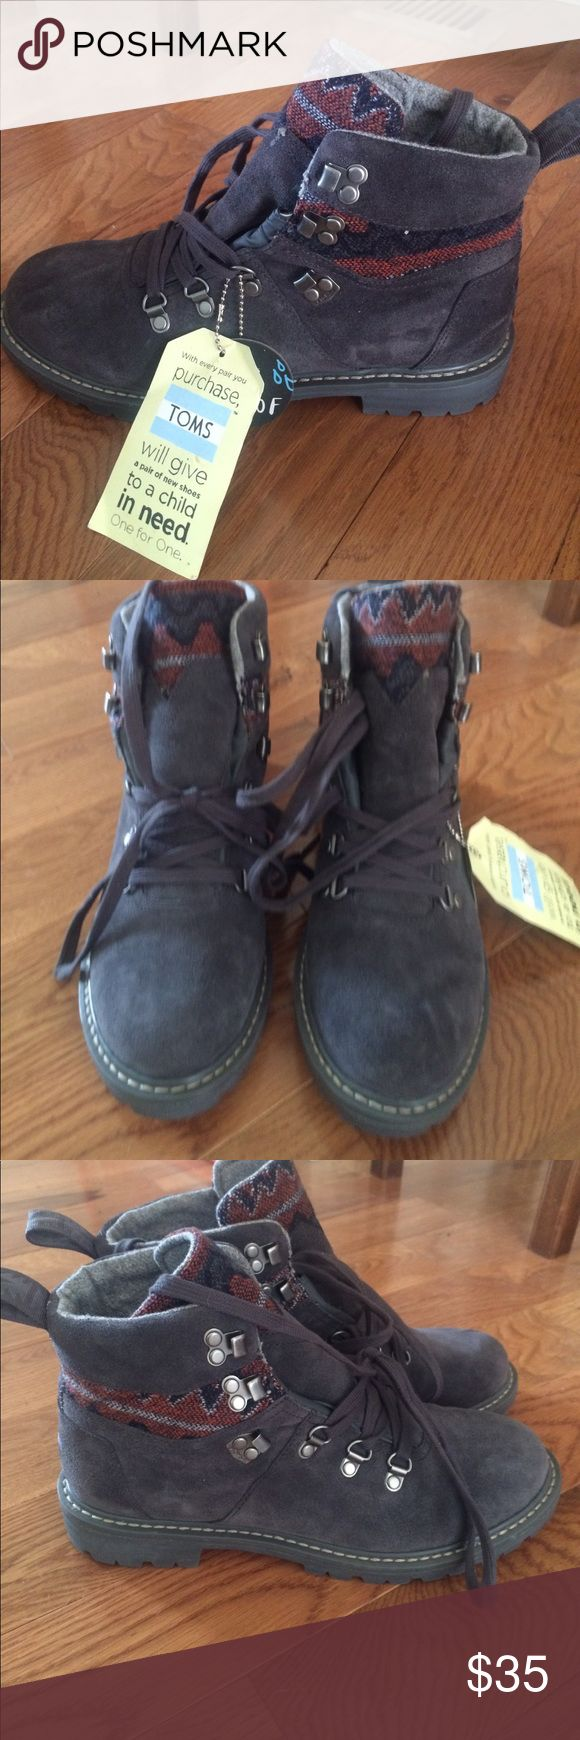 TOMS hiking boots! Brand new, never worn. Waterproof! Toms Shoes Winter & Rain Boots